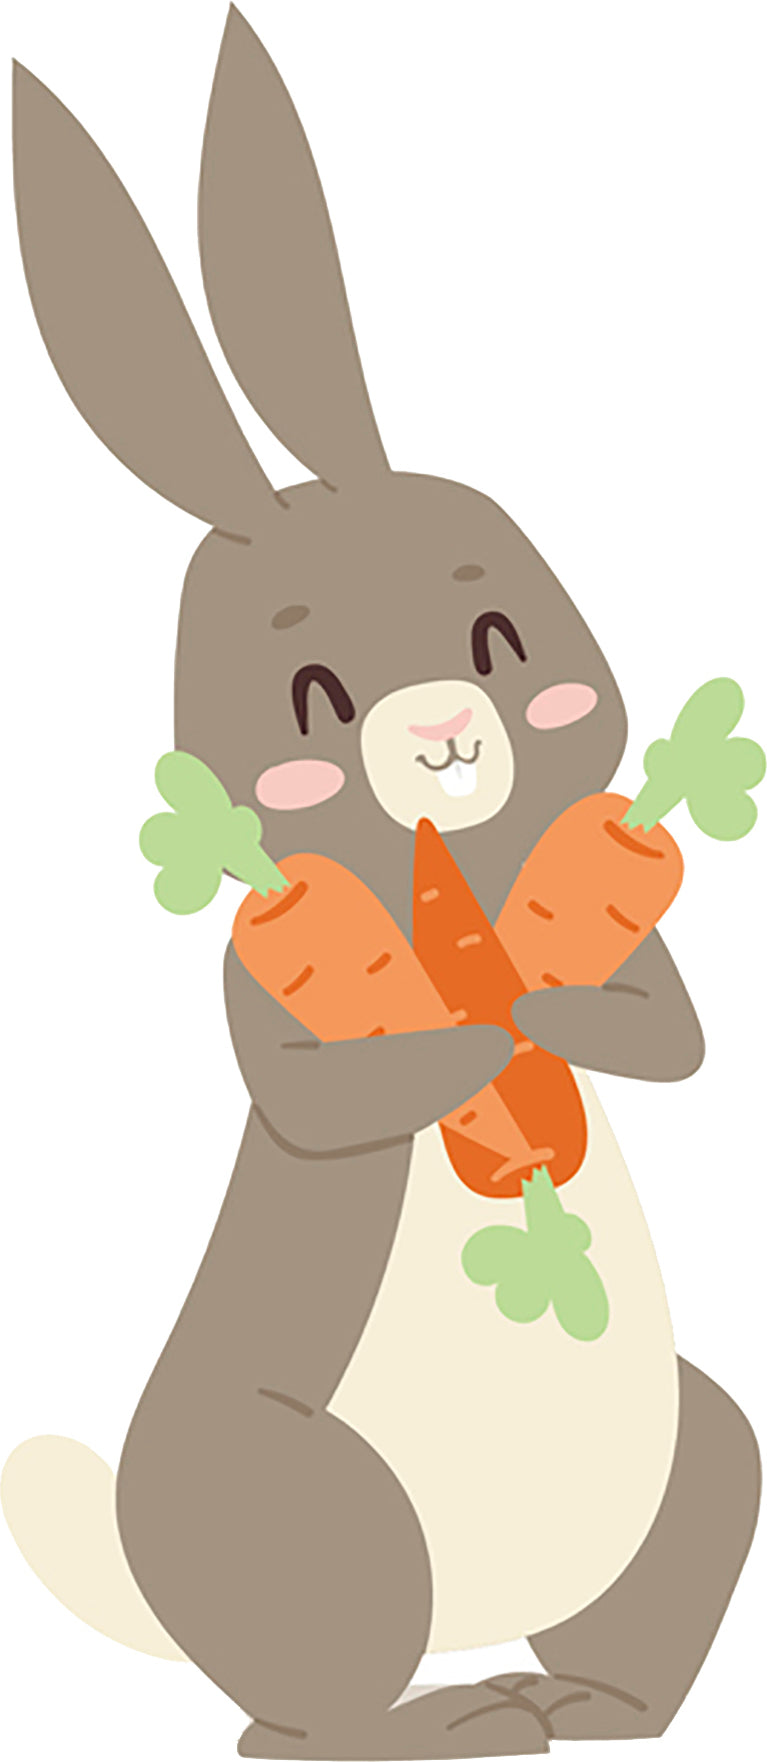 Simple Cute Gray Easter Bunny Rabbit Cartoon #8 Vinyl ...